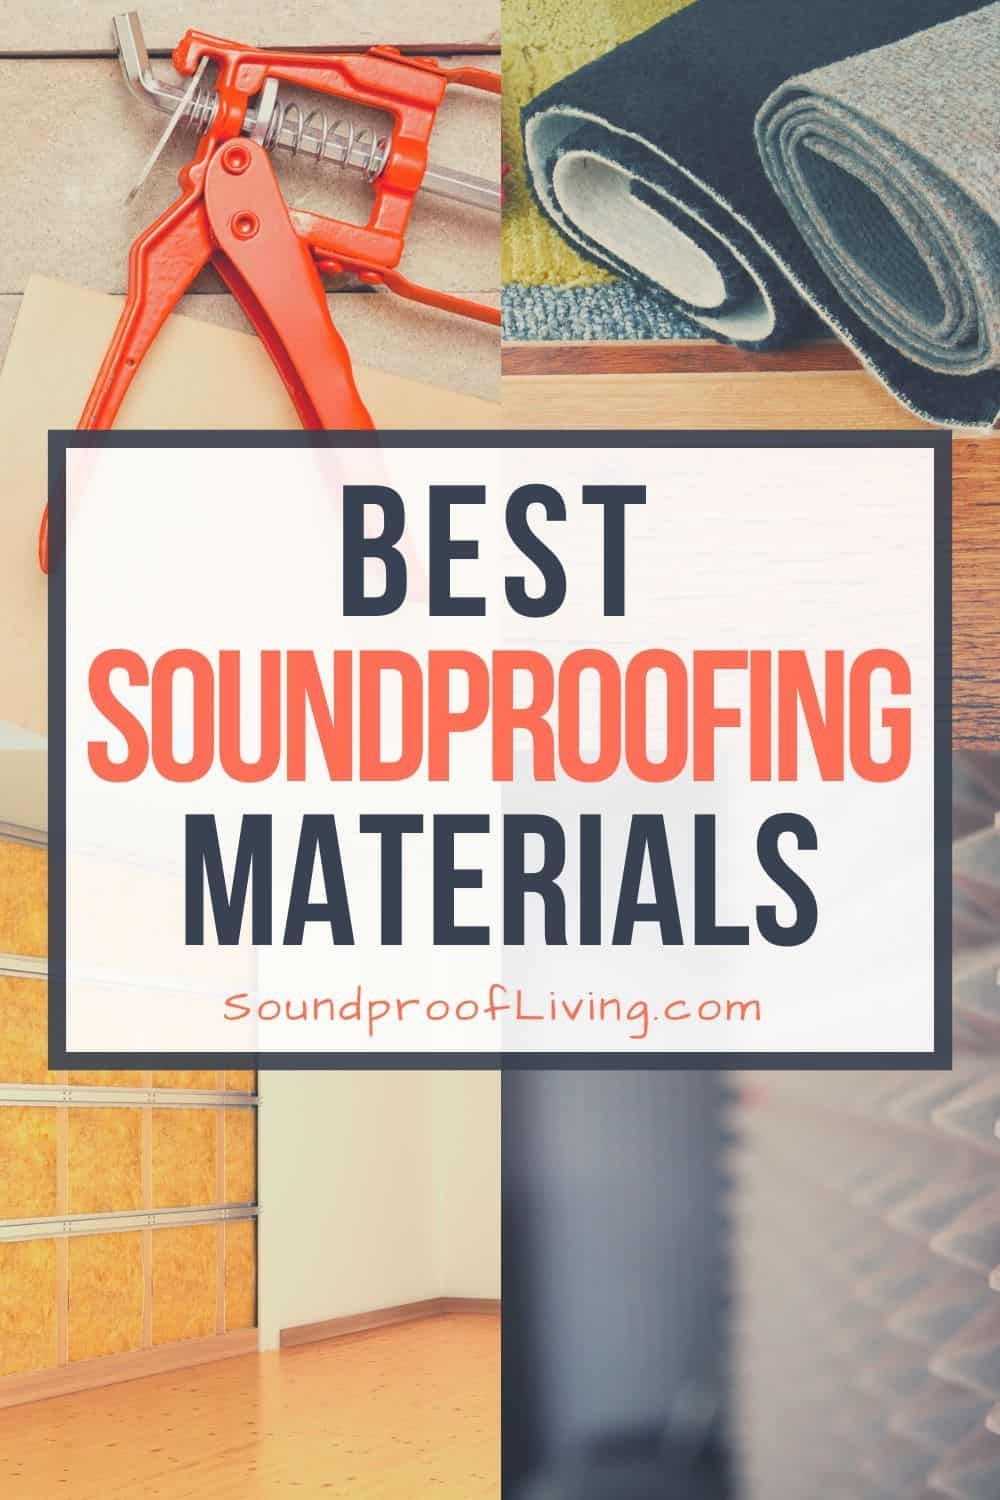 Best Soundproofing Materials And Products That Help You Block The Sound From Entering Or Leaving A Ro In 2020 Soundproofing Material Sound Proofing Wall Insulation Diy